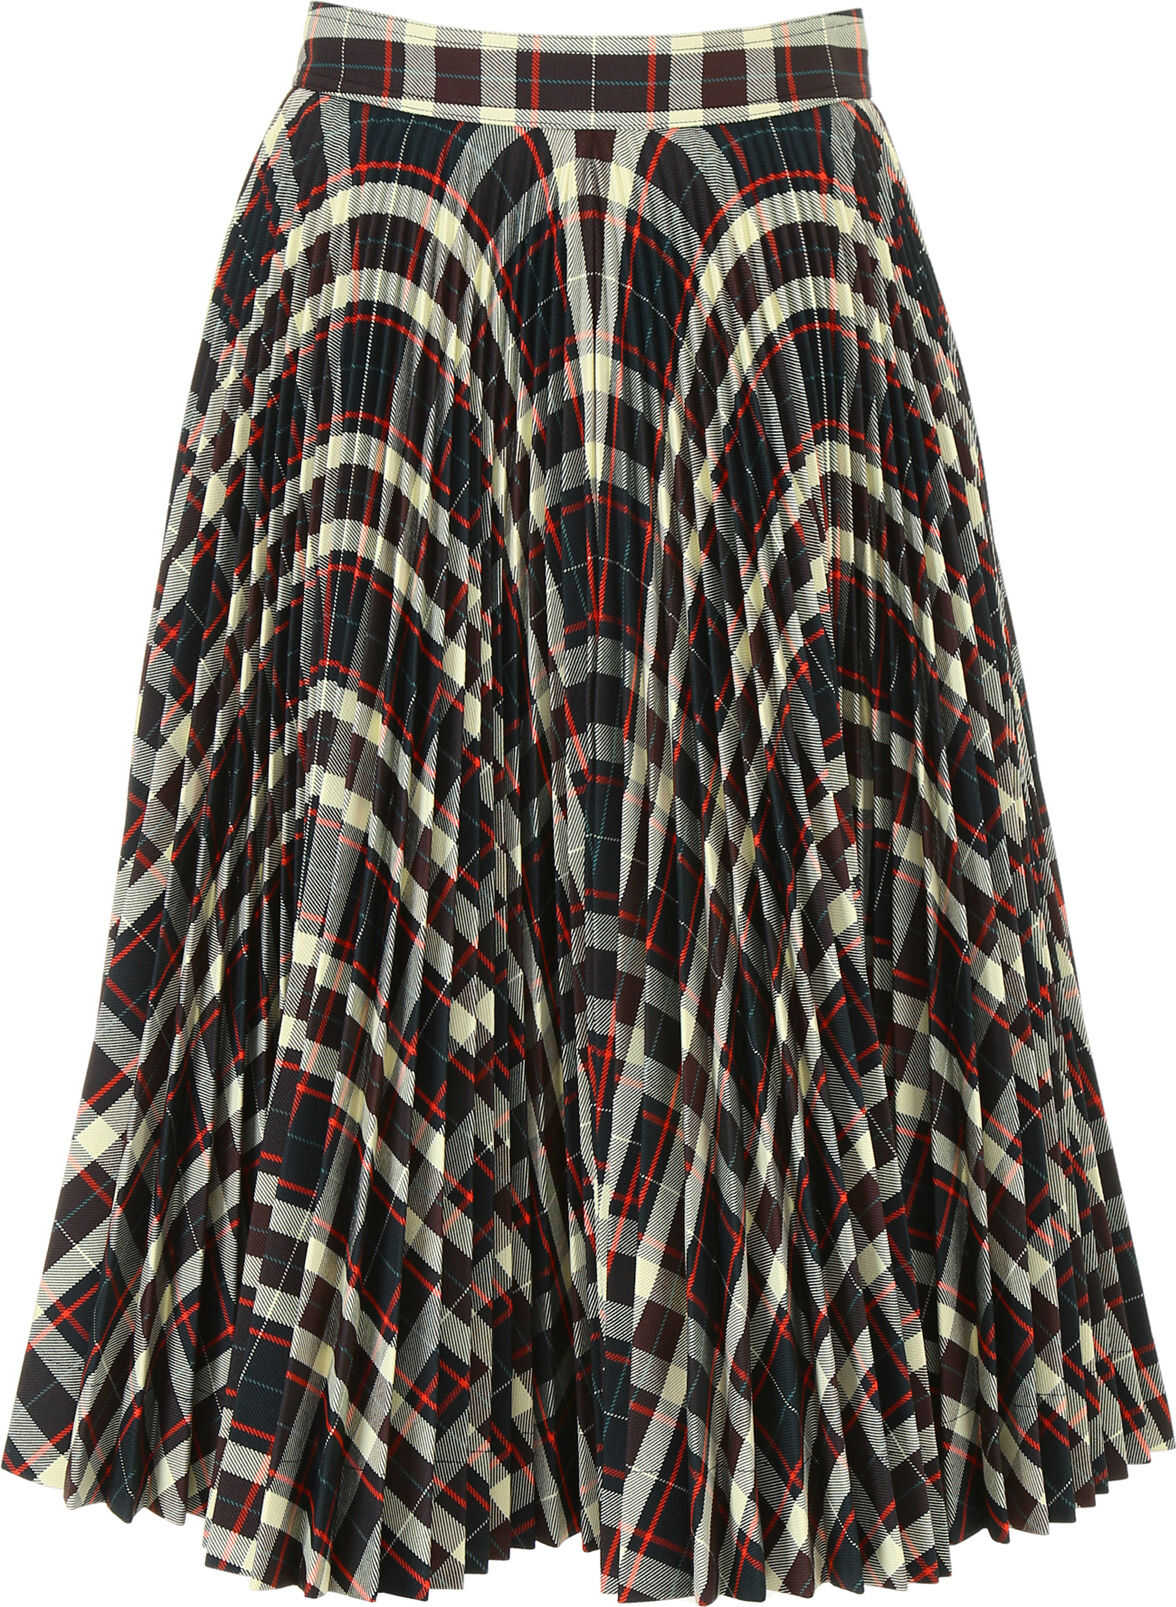 Calvin Klein 205W39NYC Pleated Check Skirt MARRONE CHIARO PASTELLO